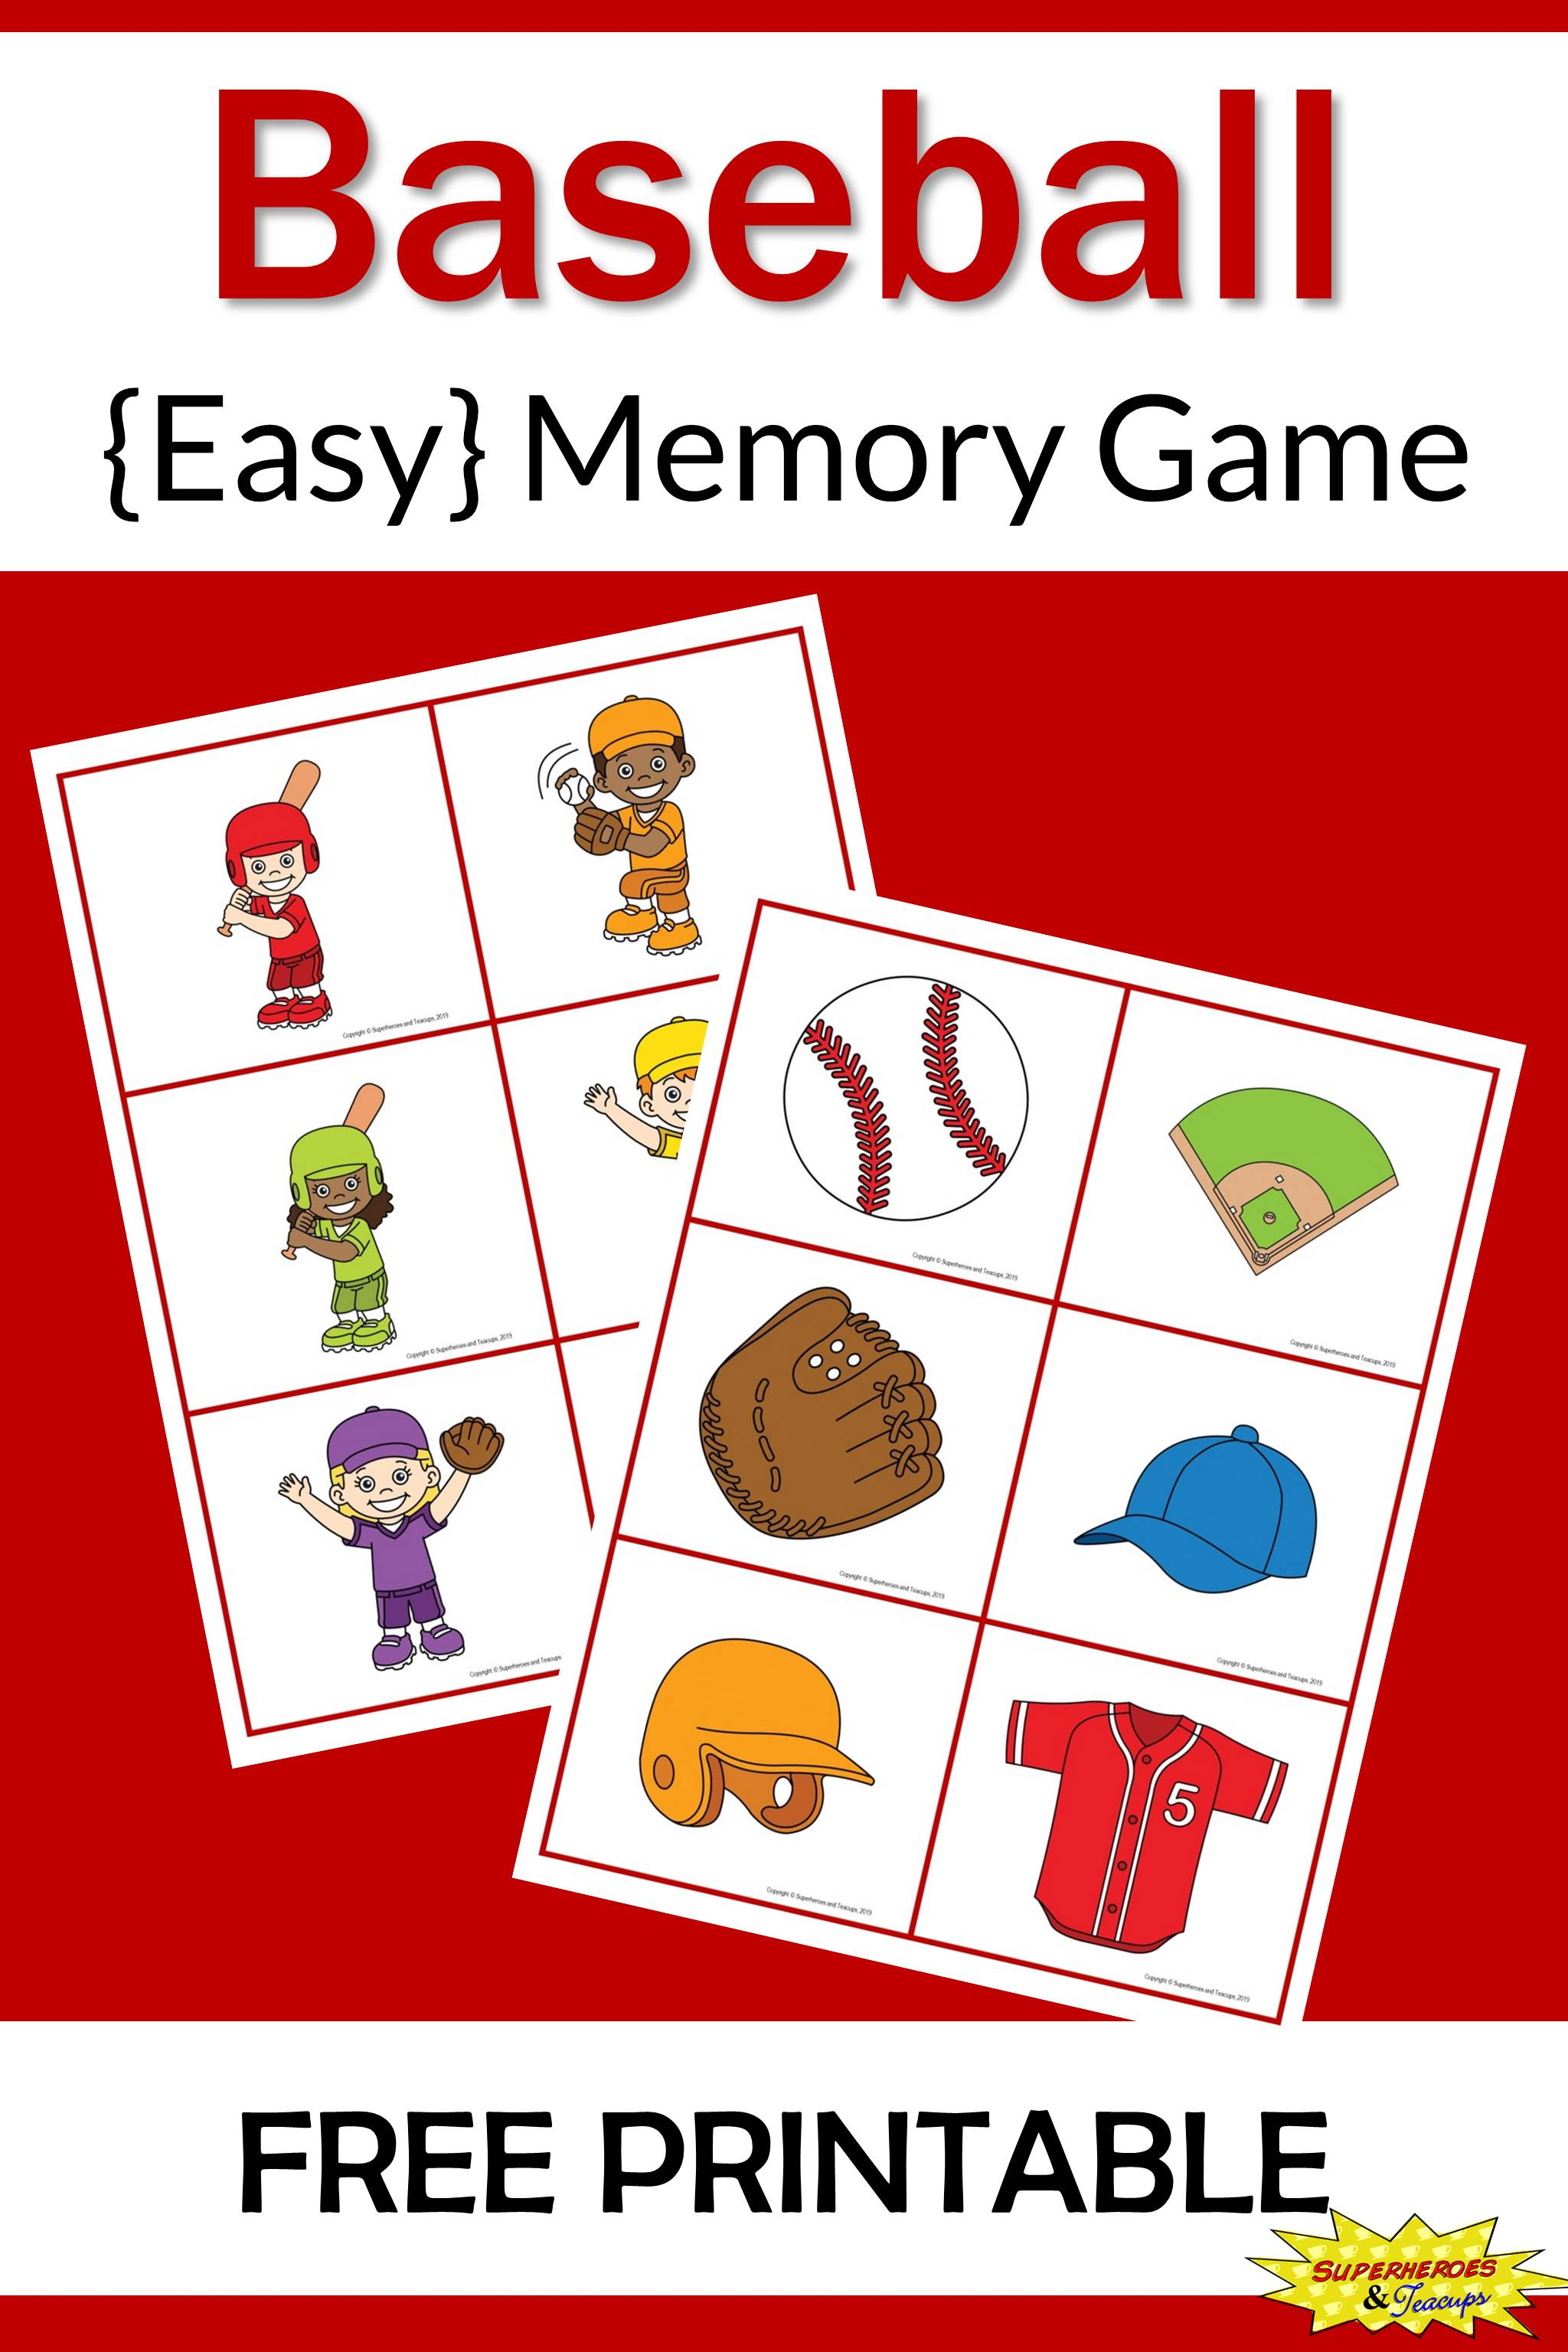 graphic about Printable Memory Game named Baseball Memory Match Totally free Printable for Little ones